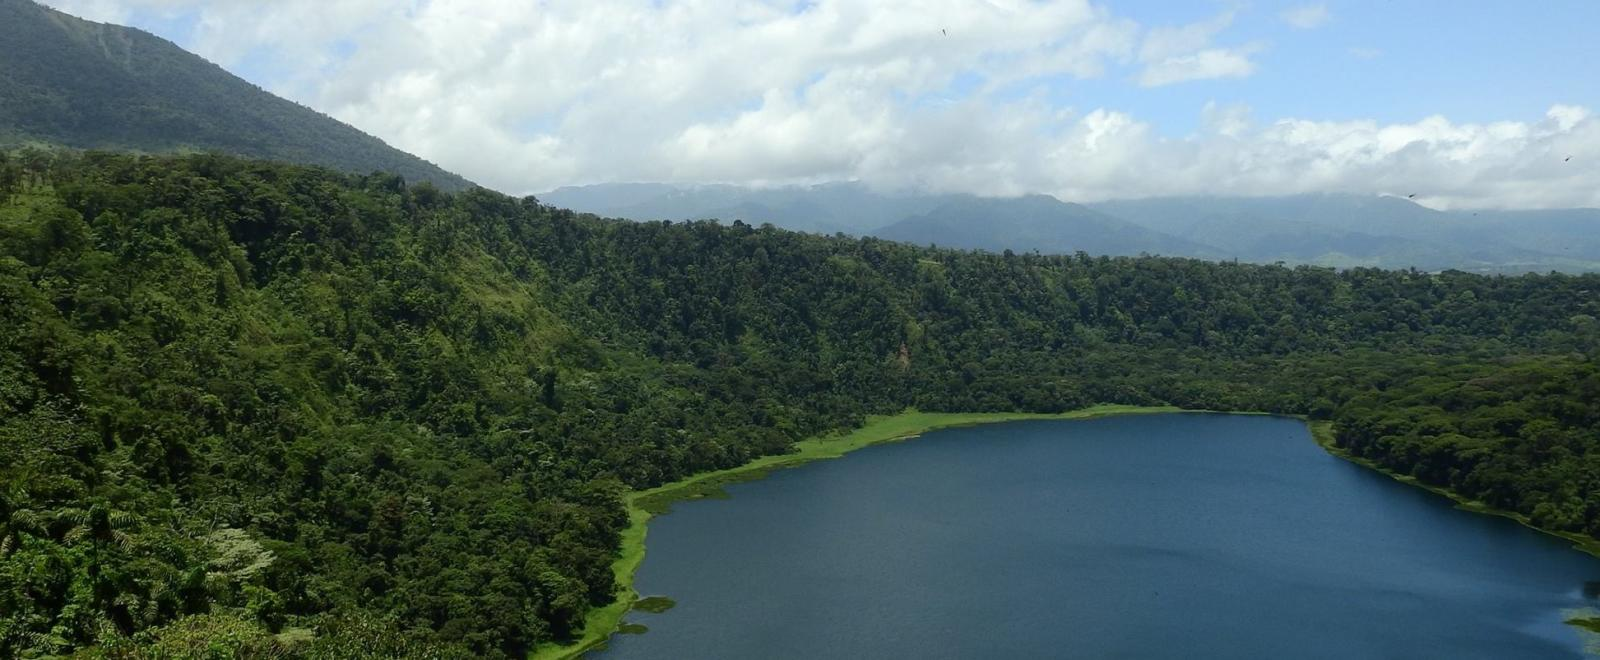 A beautiful lake scene captured by volunteers in Costa Rica on a tailor-made group trip.